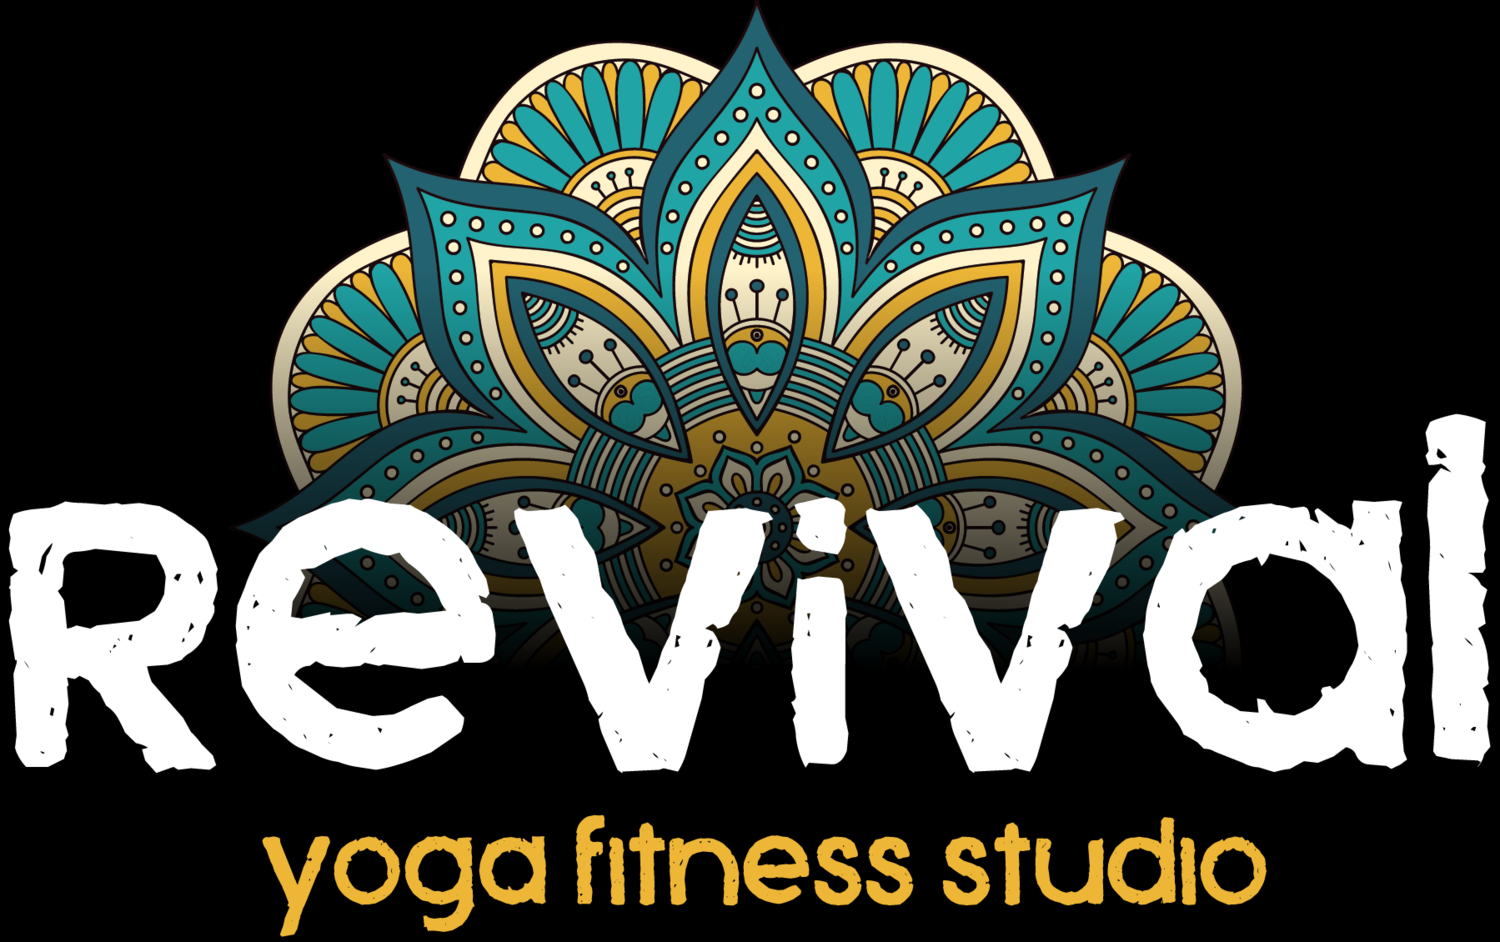 Revival Yoga Fitness Studio